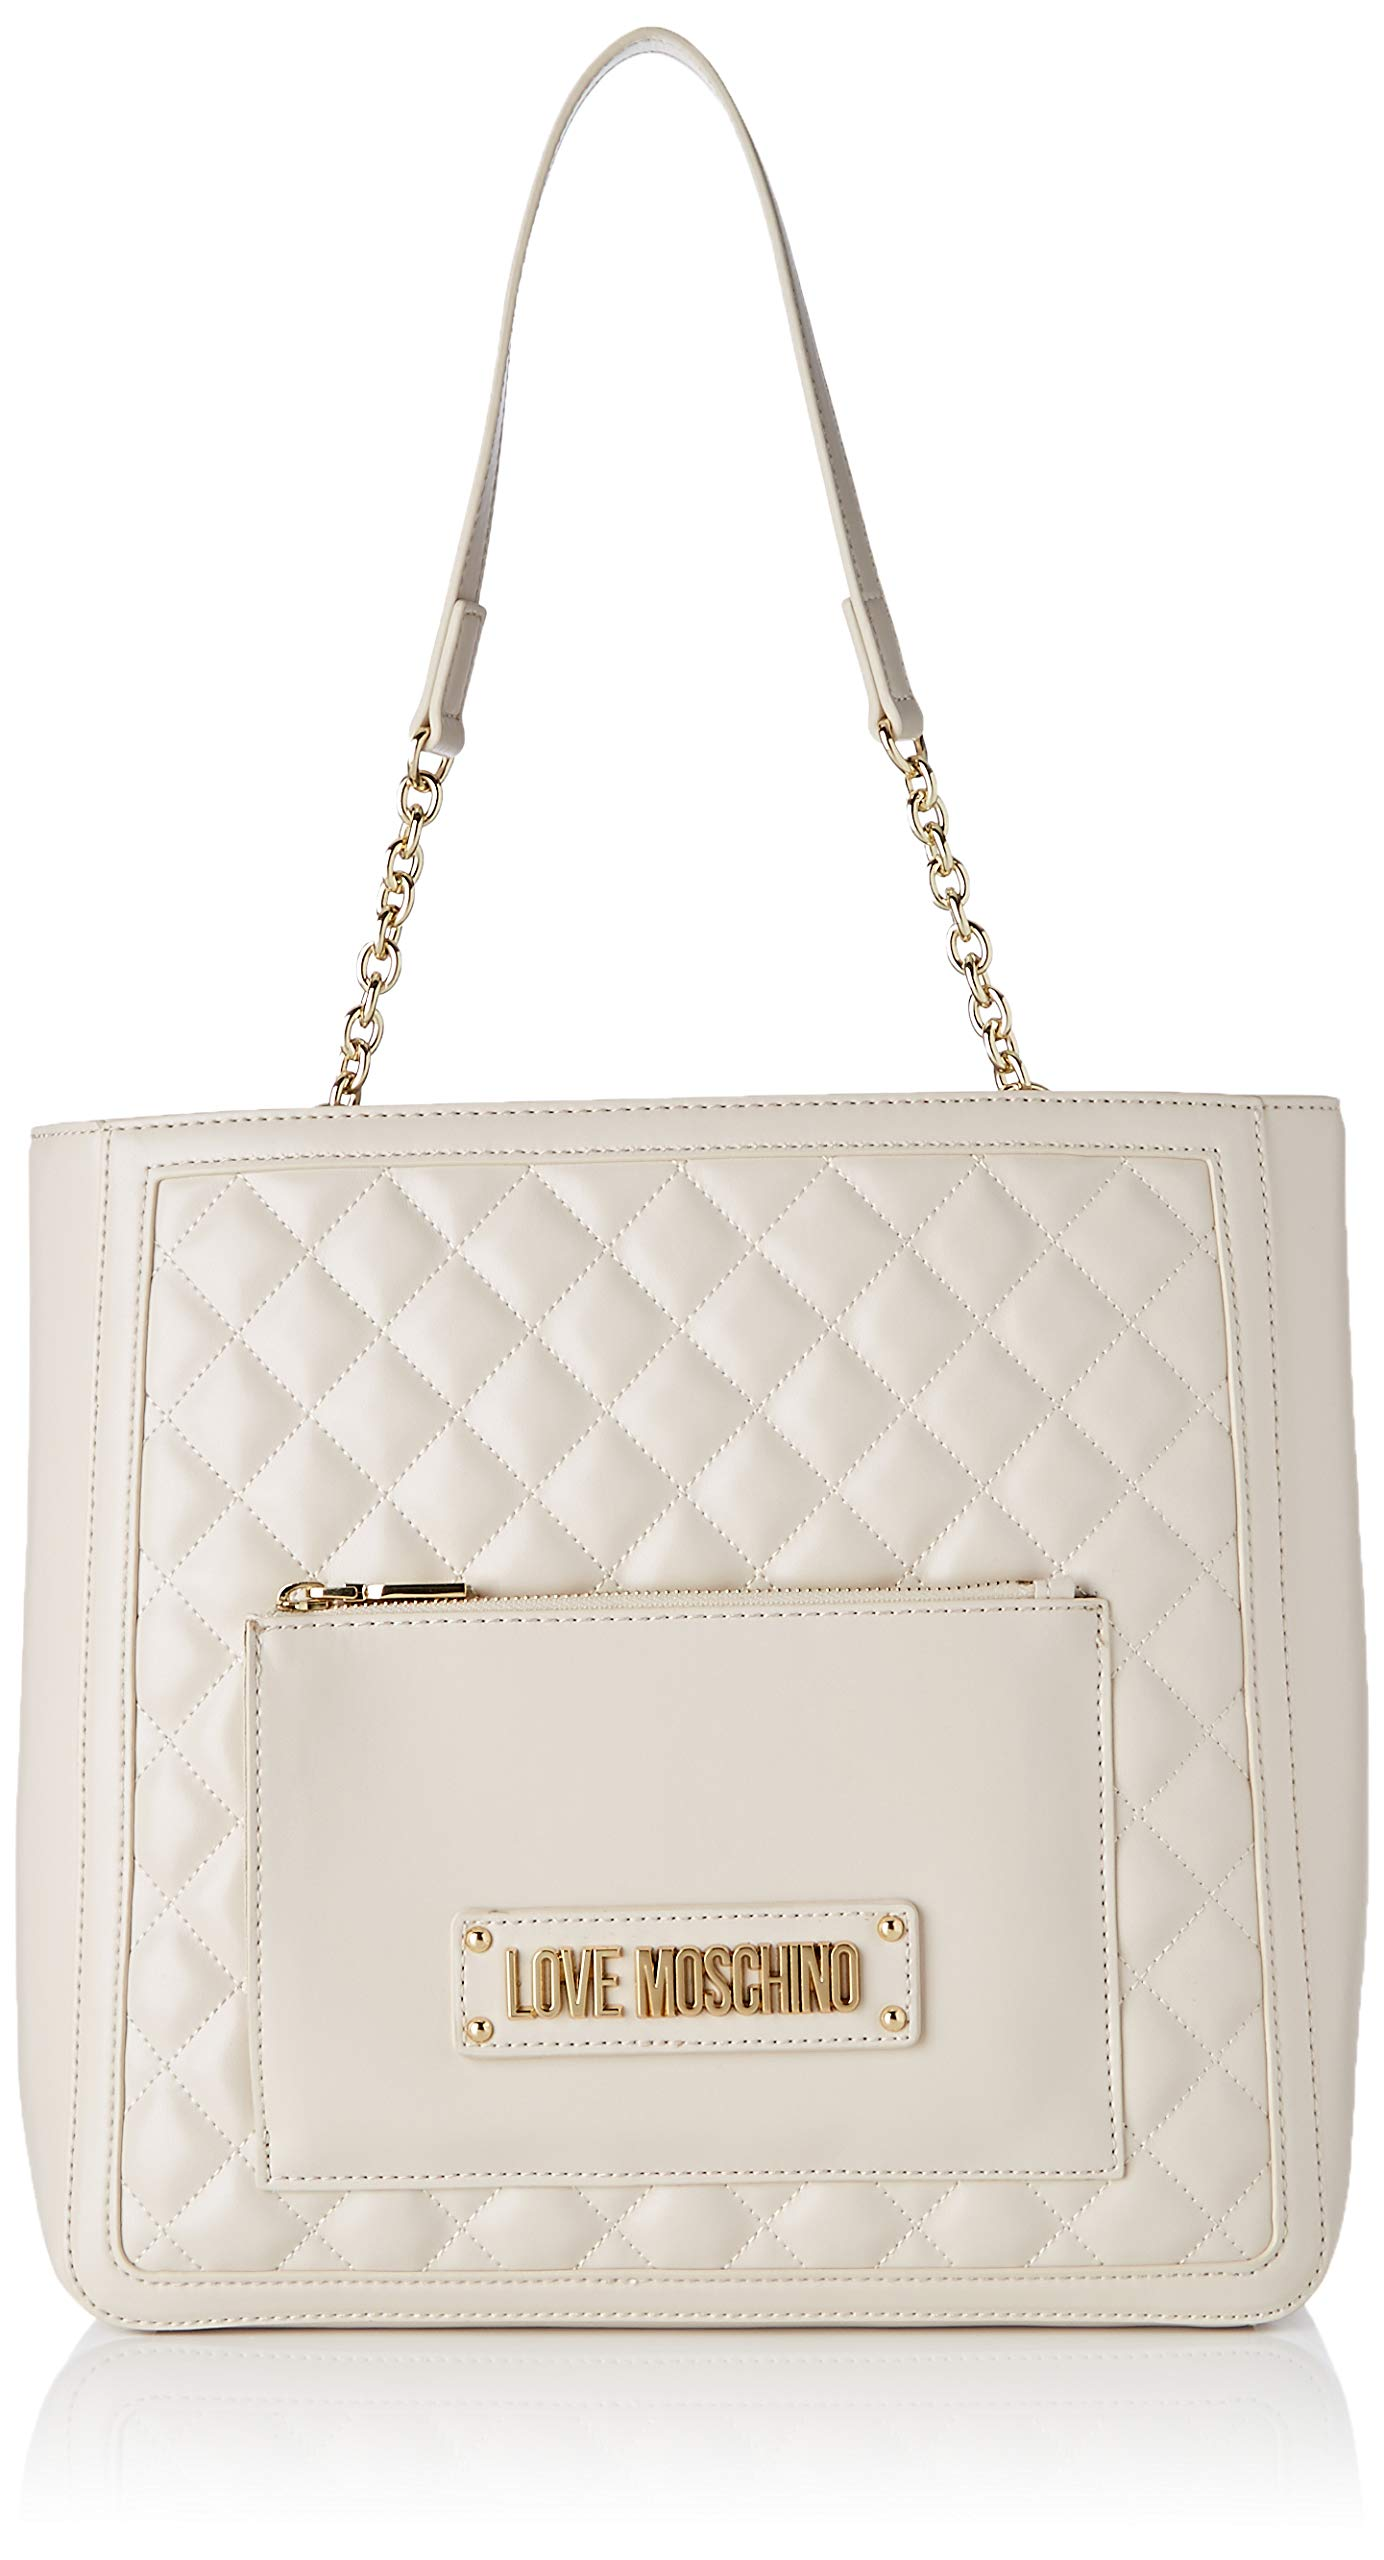 PuSac L Love H Borsa Nappa À Bandoulière Moschino X FemmeEcruavorio11x29x35 Quilted Centimetersw 2e9YDEIWHb